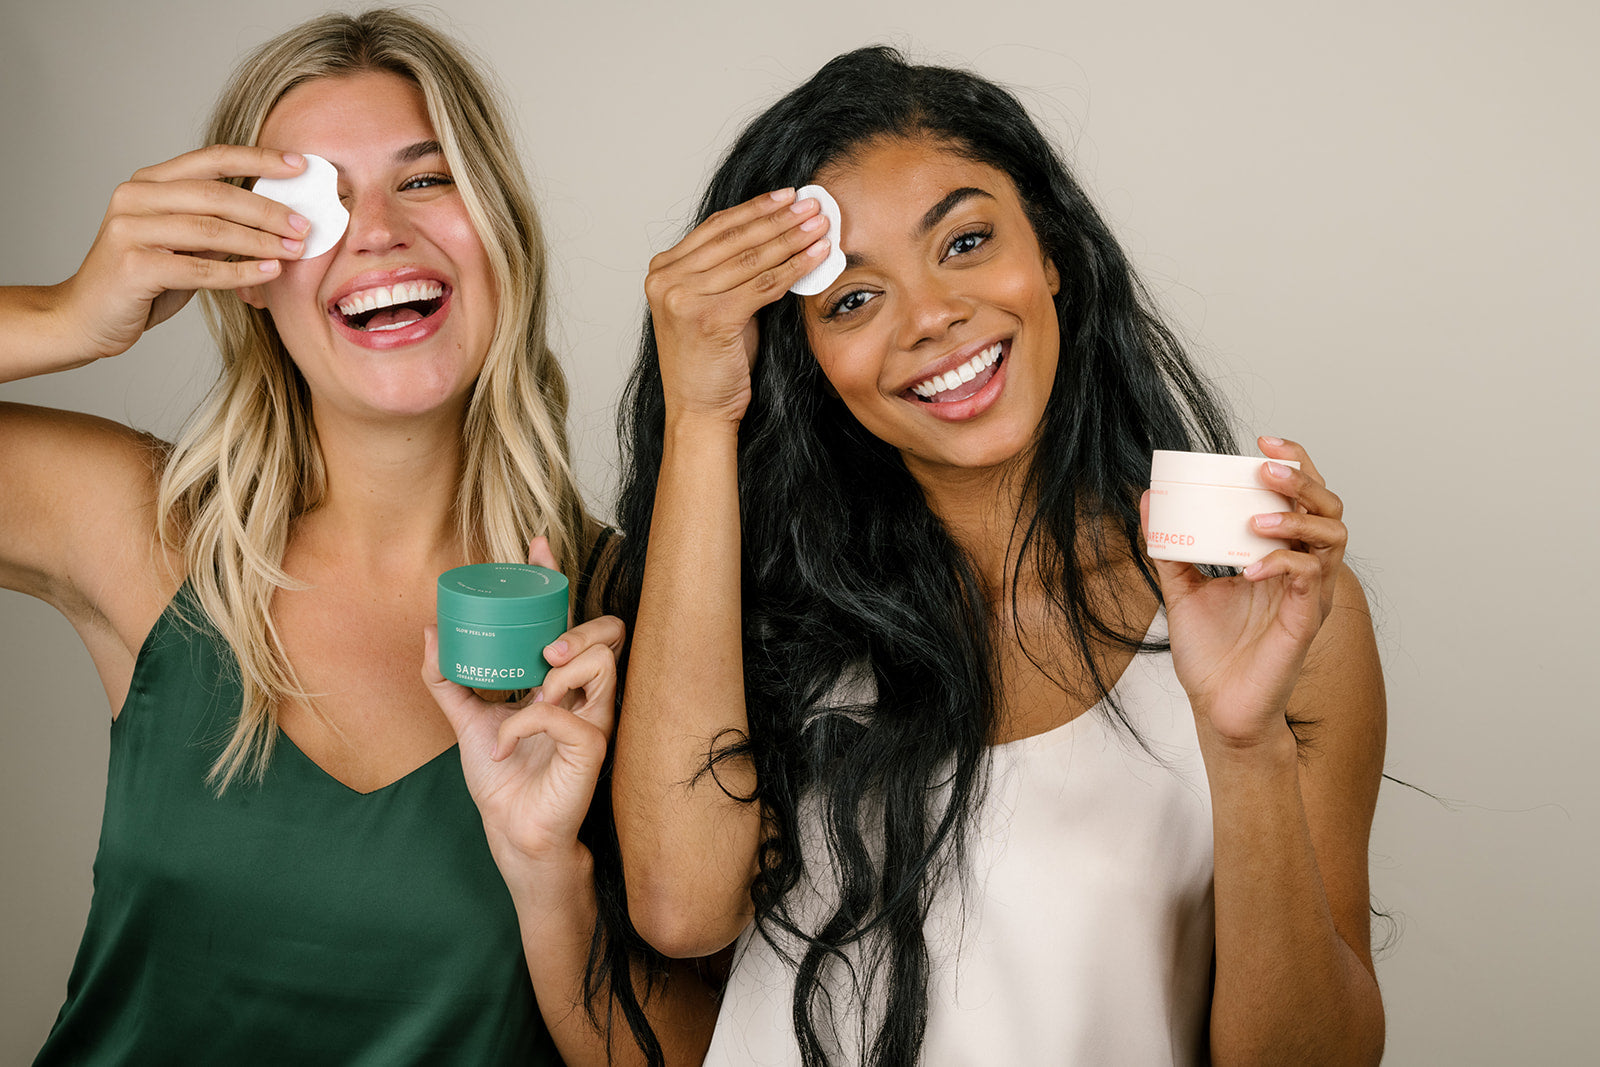 Barefaced skincare models with Glow Peel Pads and Toning Pads II.